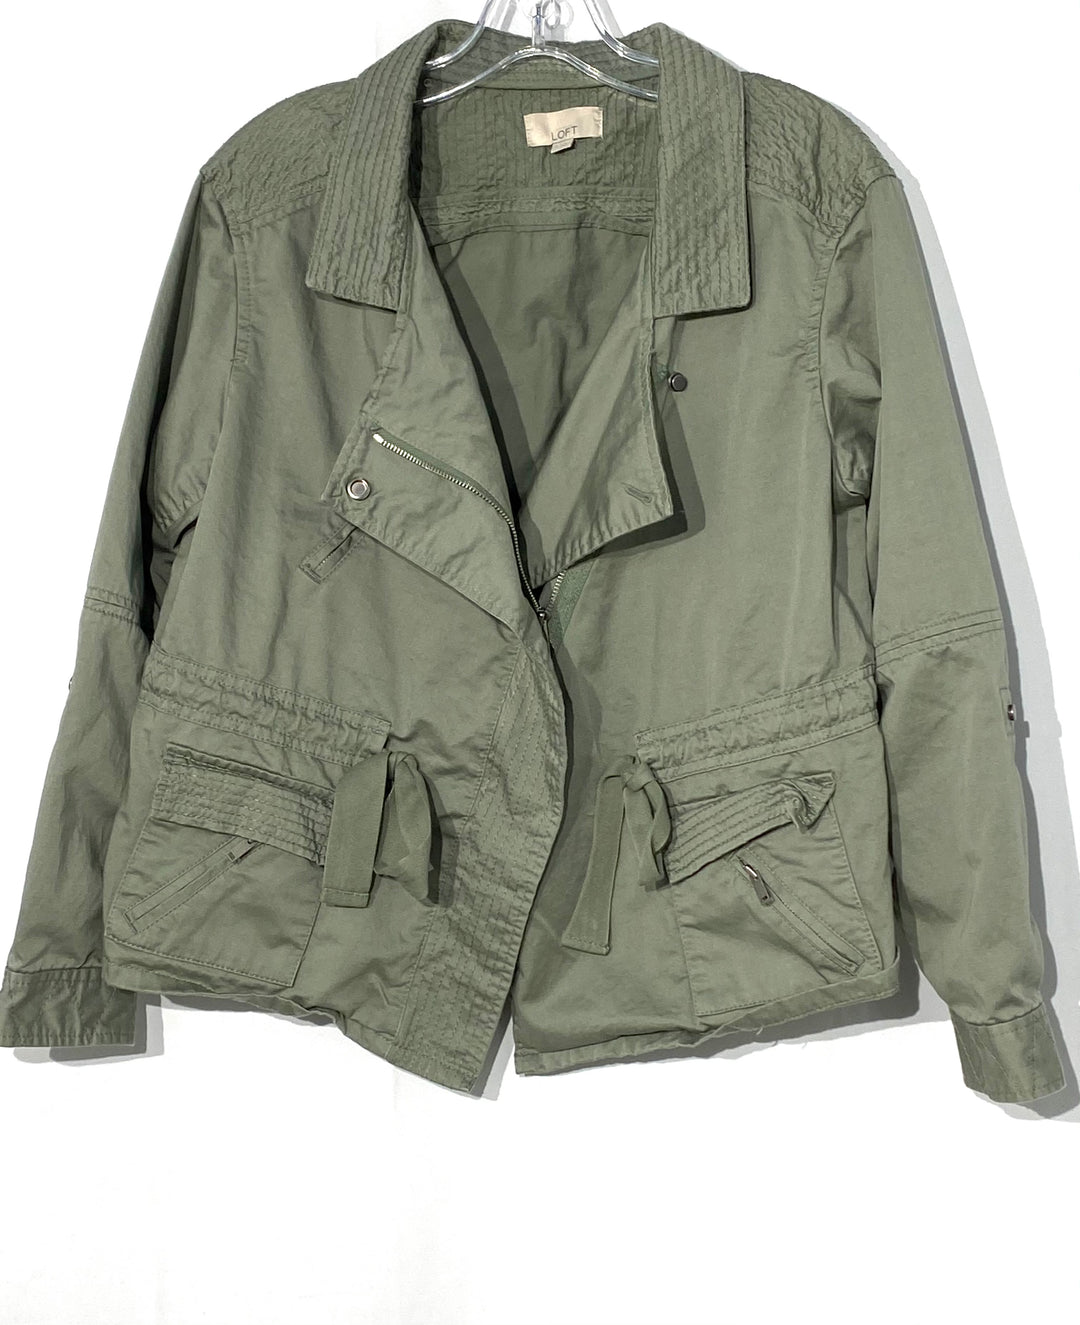 Primary Photo - BRAND: ANN TAYLOR LOFT <BR>STYLE: BLAZER JACKET <BR>COLOR: OLIVE <BR>SIZE: S <BR>SKU: 262-26211-141526